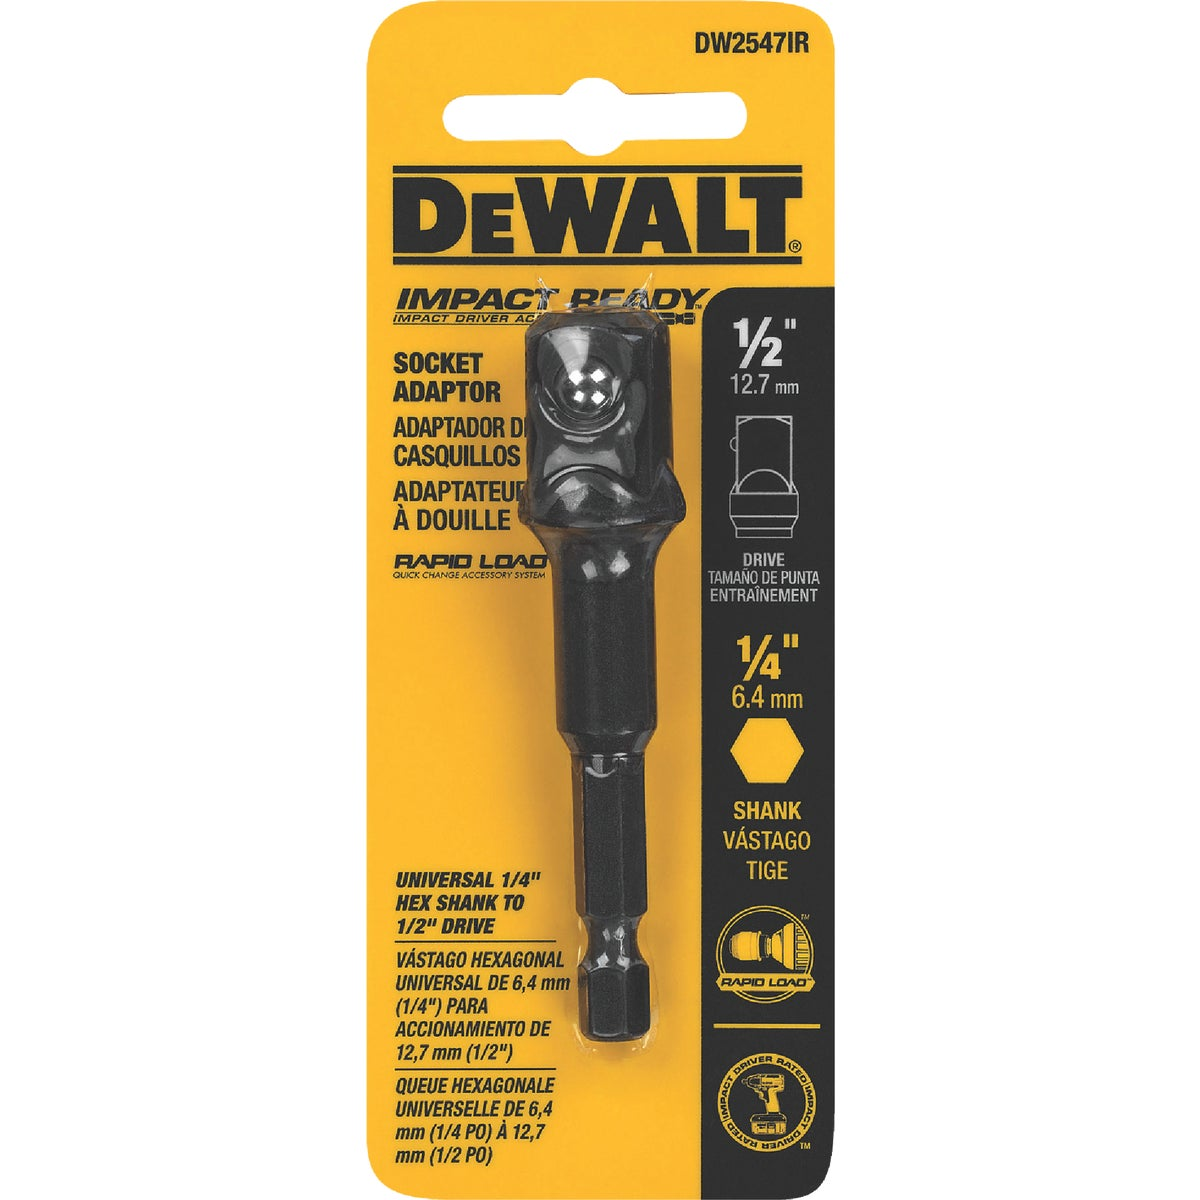 "1/2"" IR SOCKET ADAPTER - DW2547IR by DeWalt"